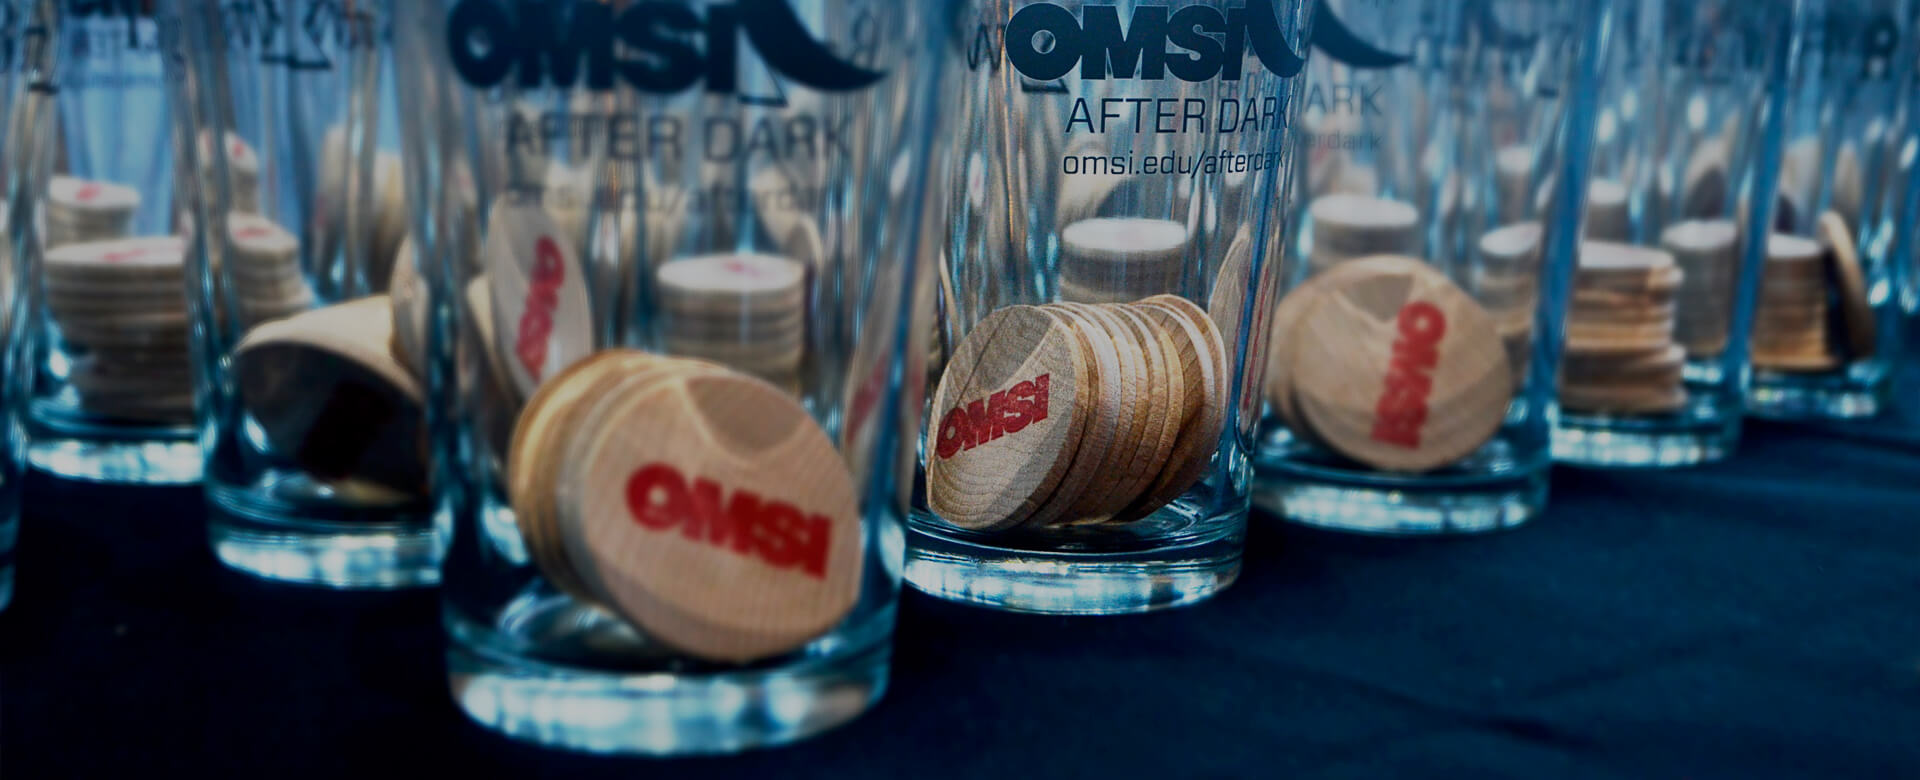 OMSI After Dark pint glasses with tokens